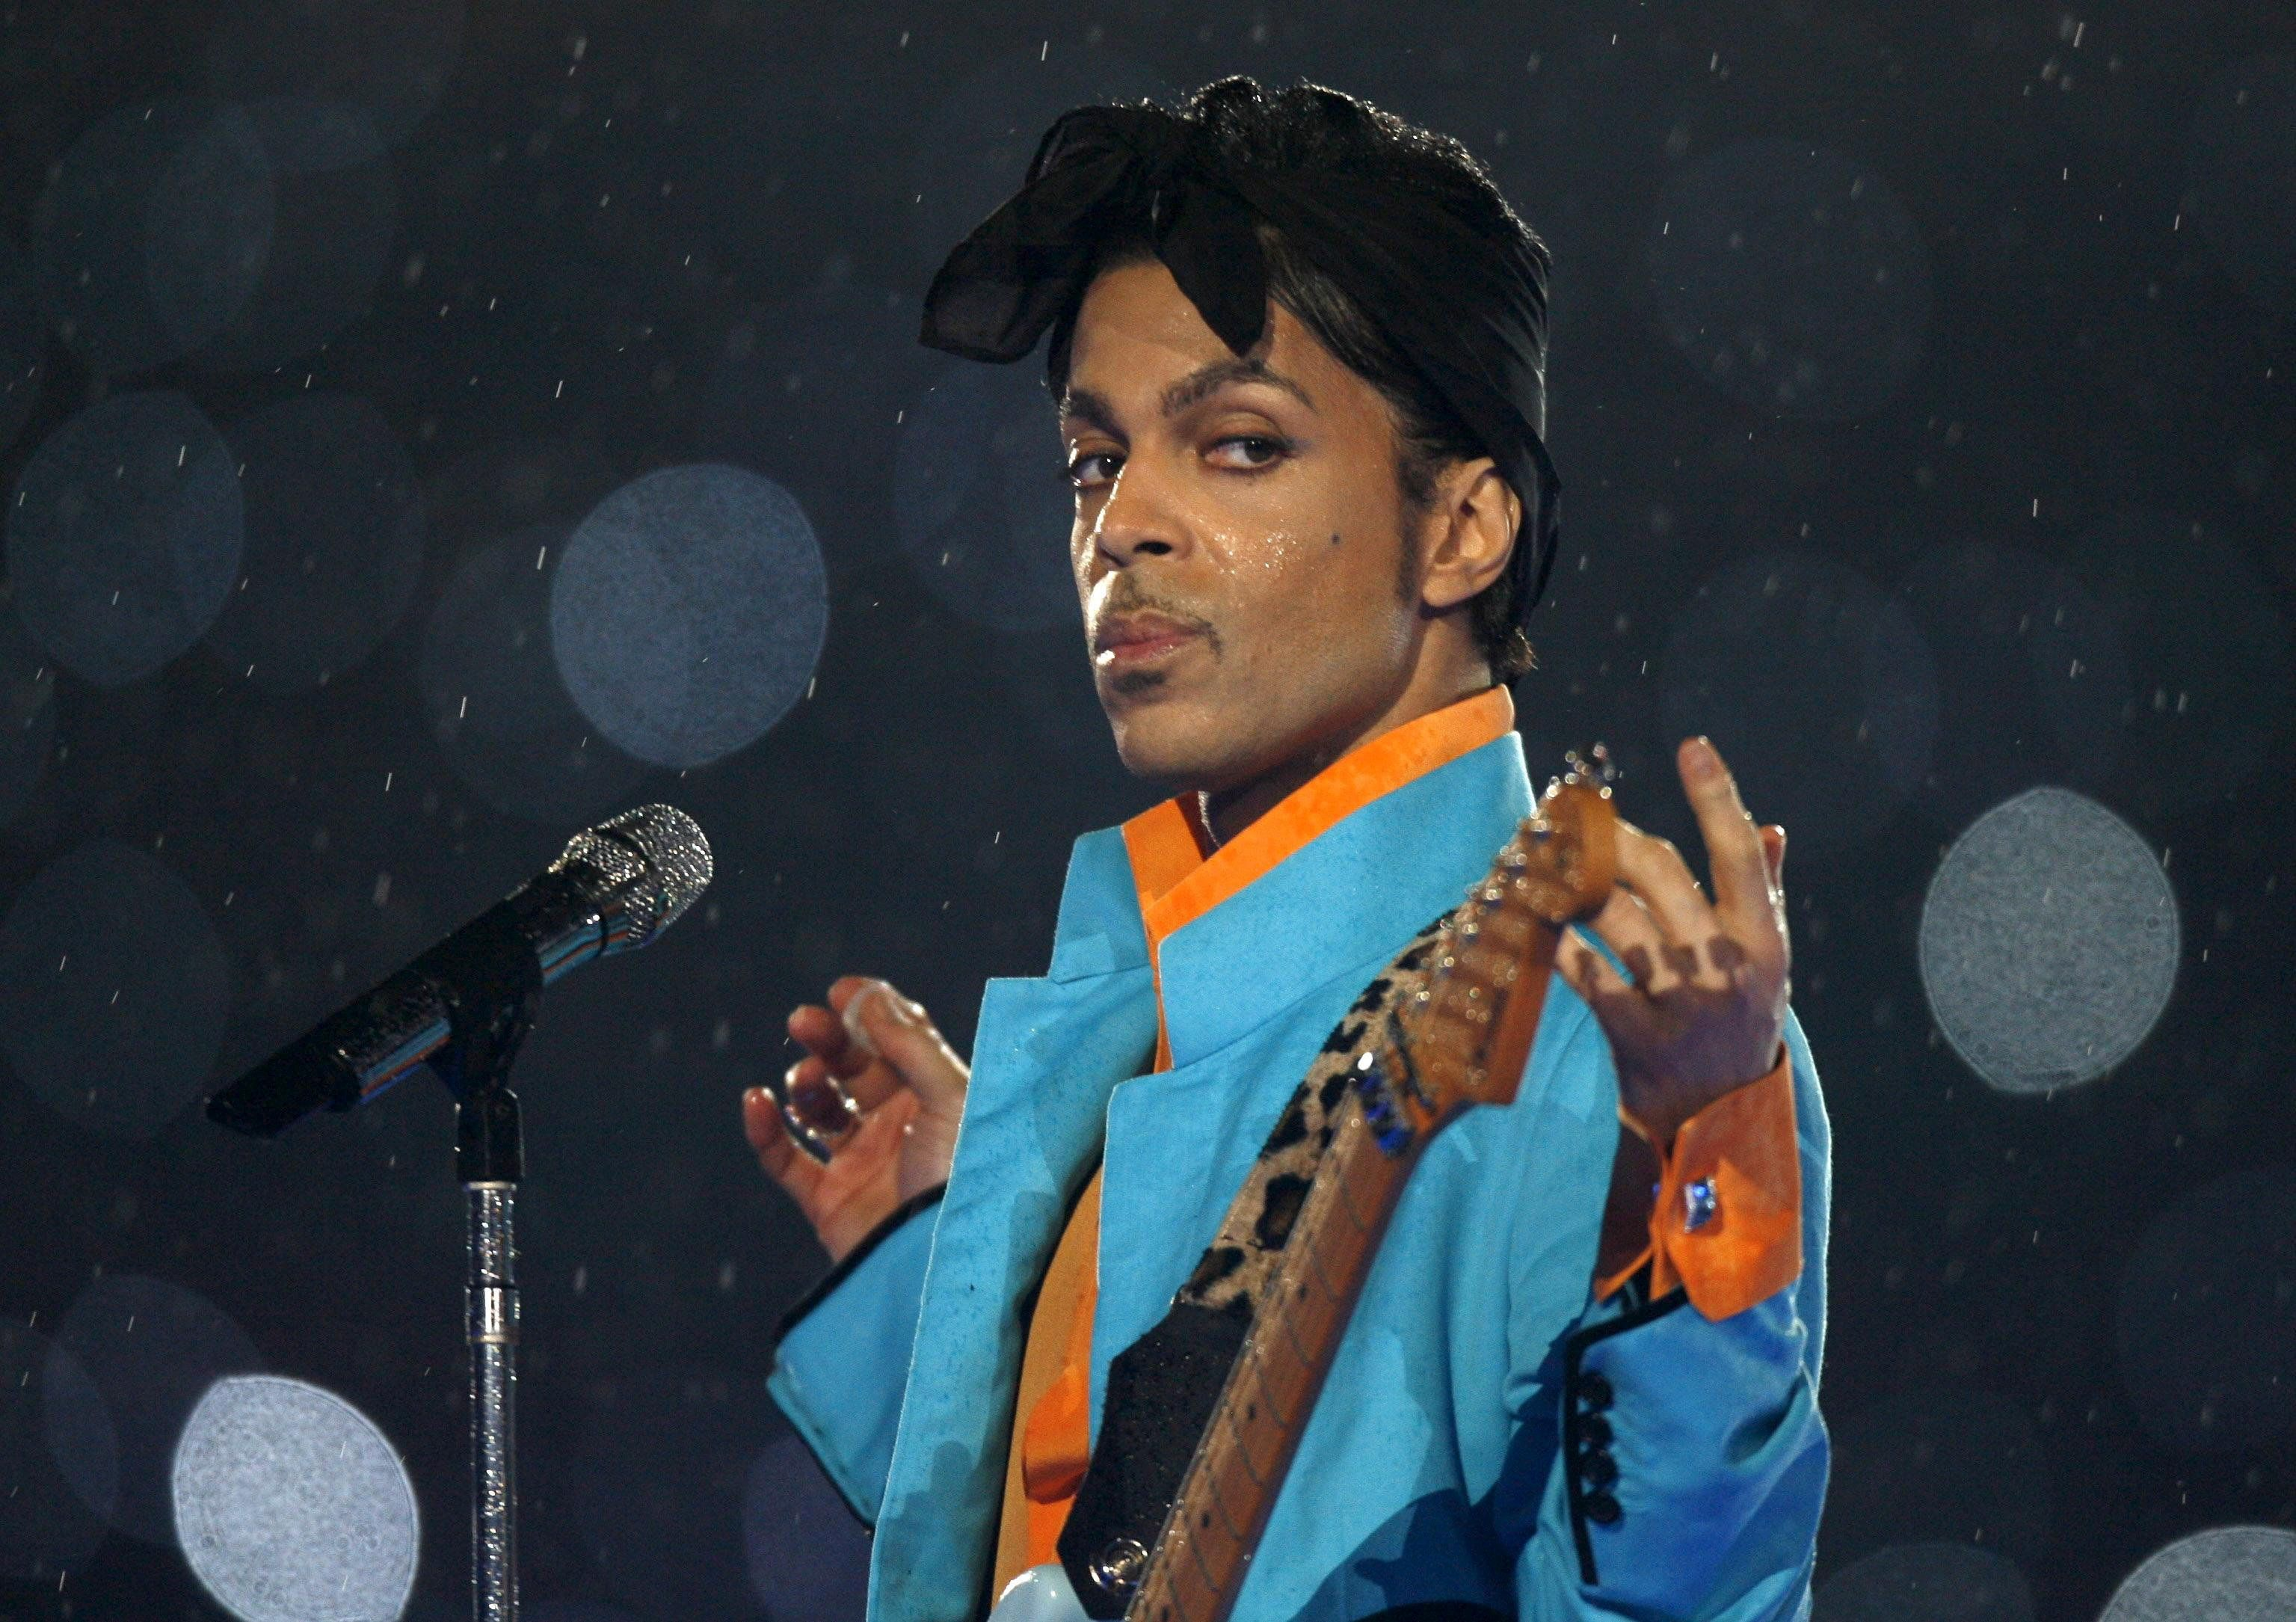 Apparently Prince Left Behind Nearly A Million Dollars In Gold